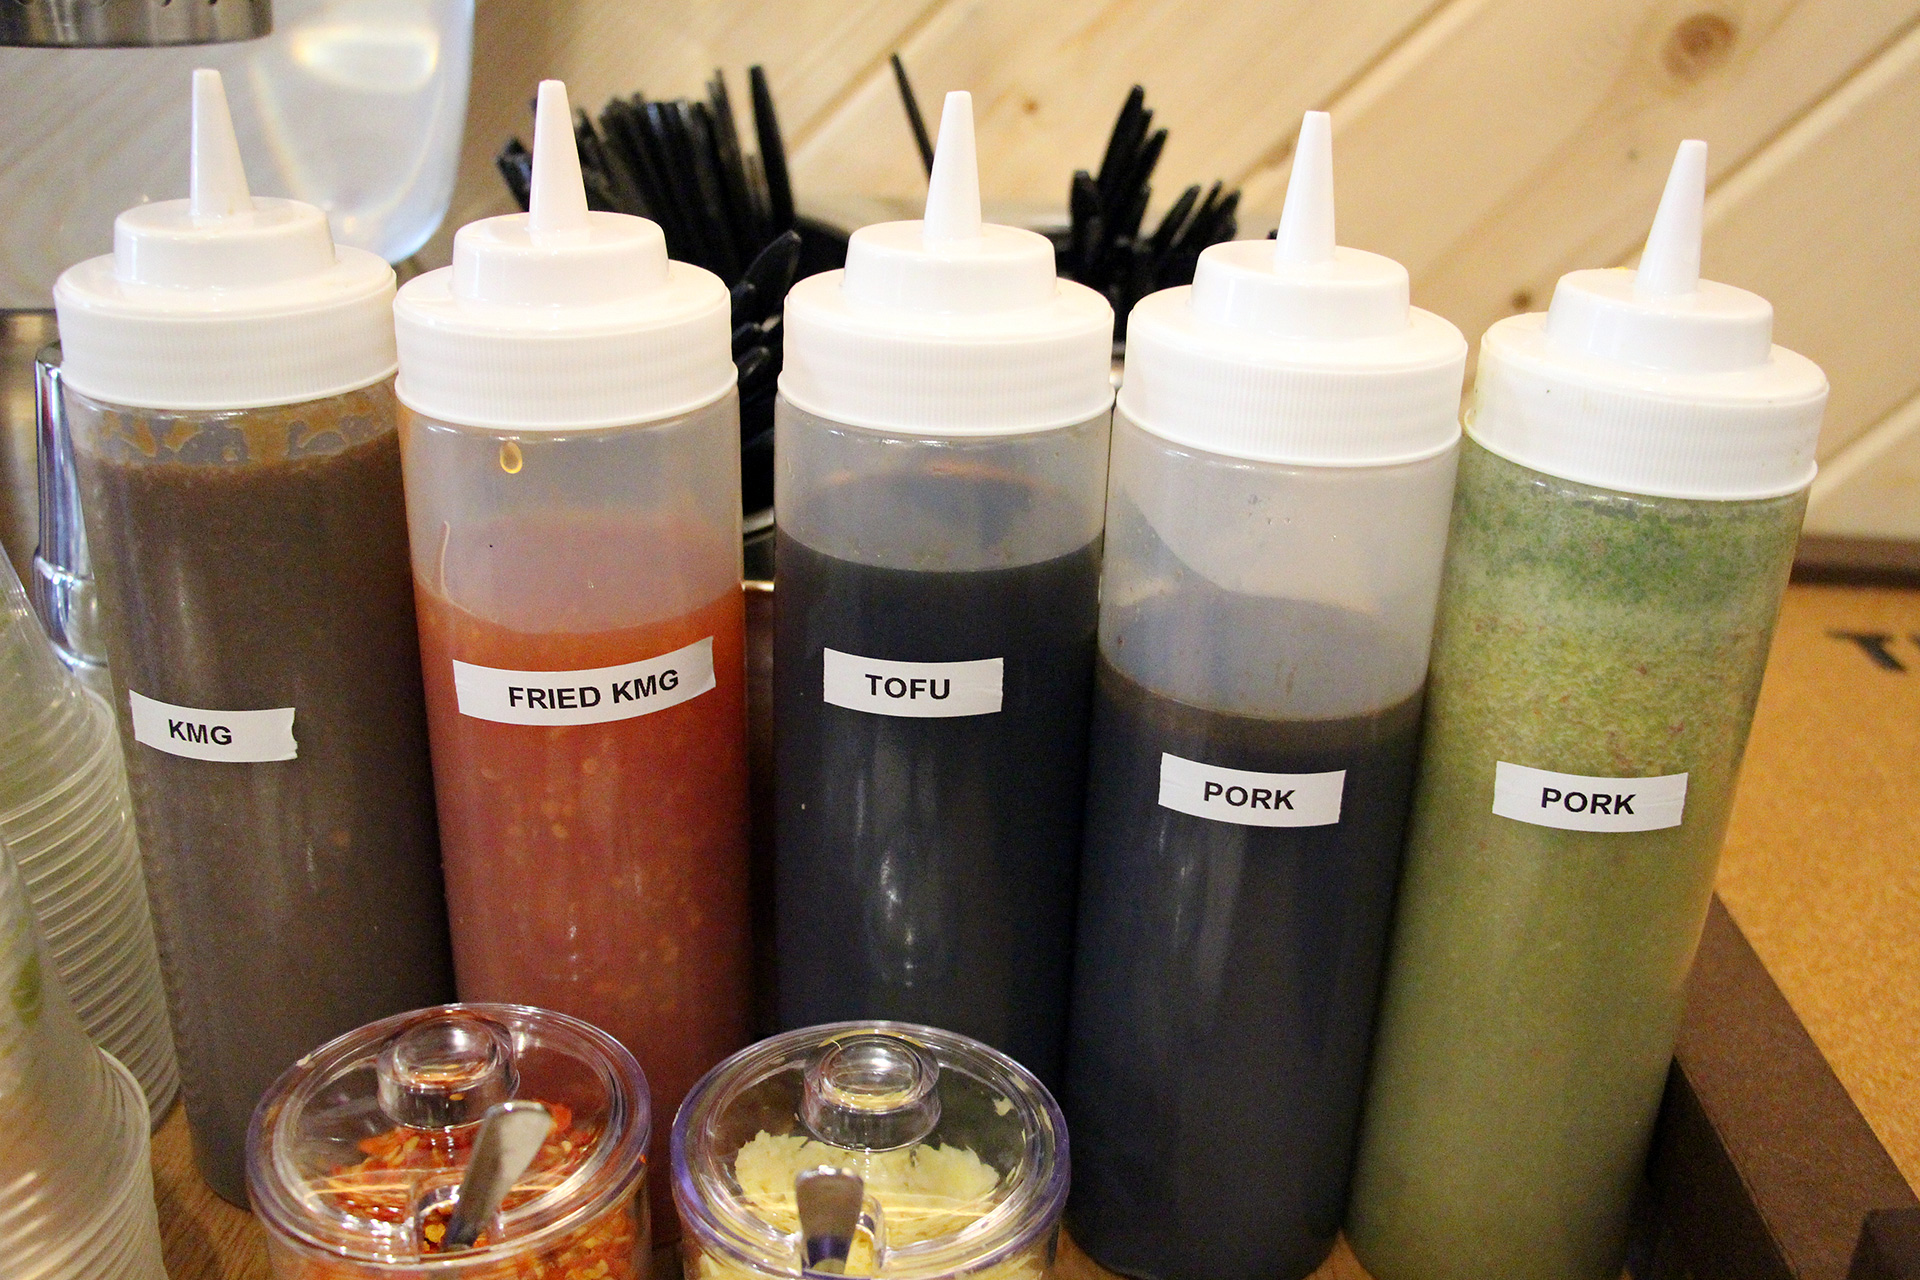 Sauces that accompany the dishes.